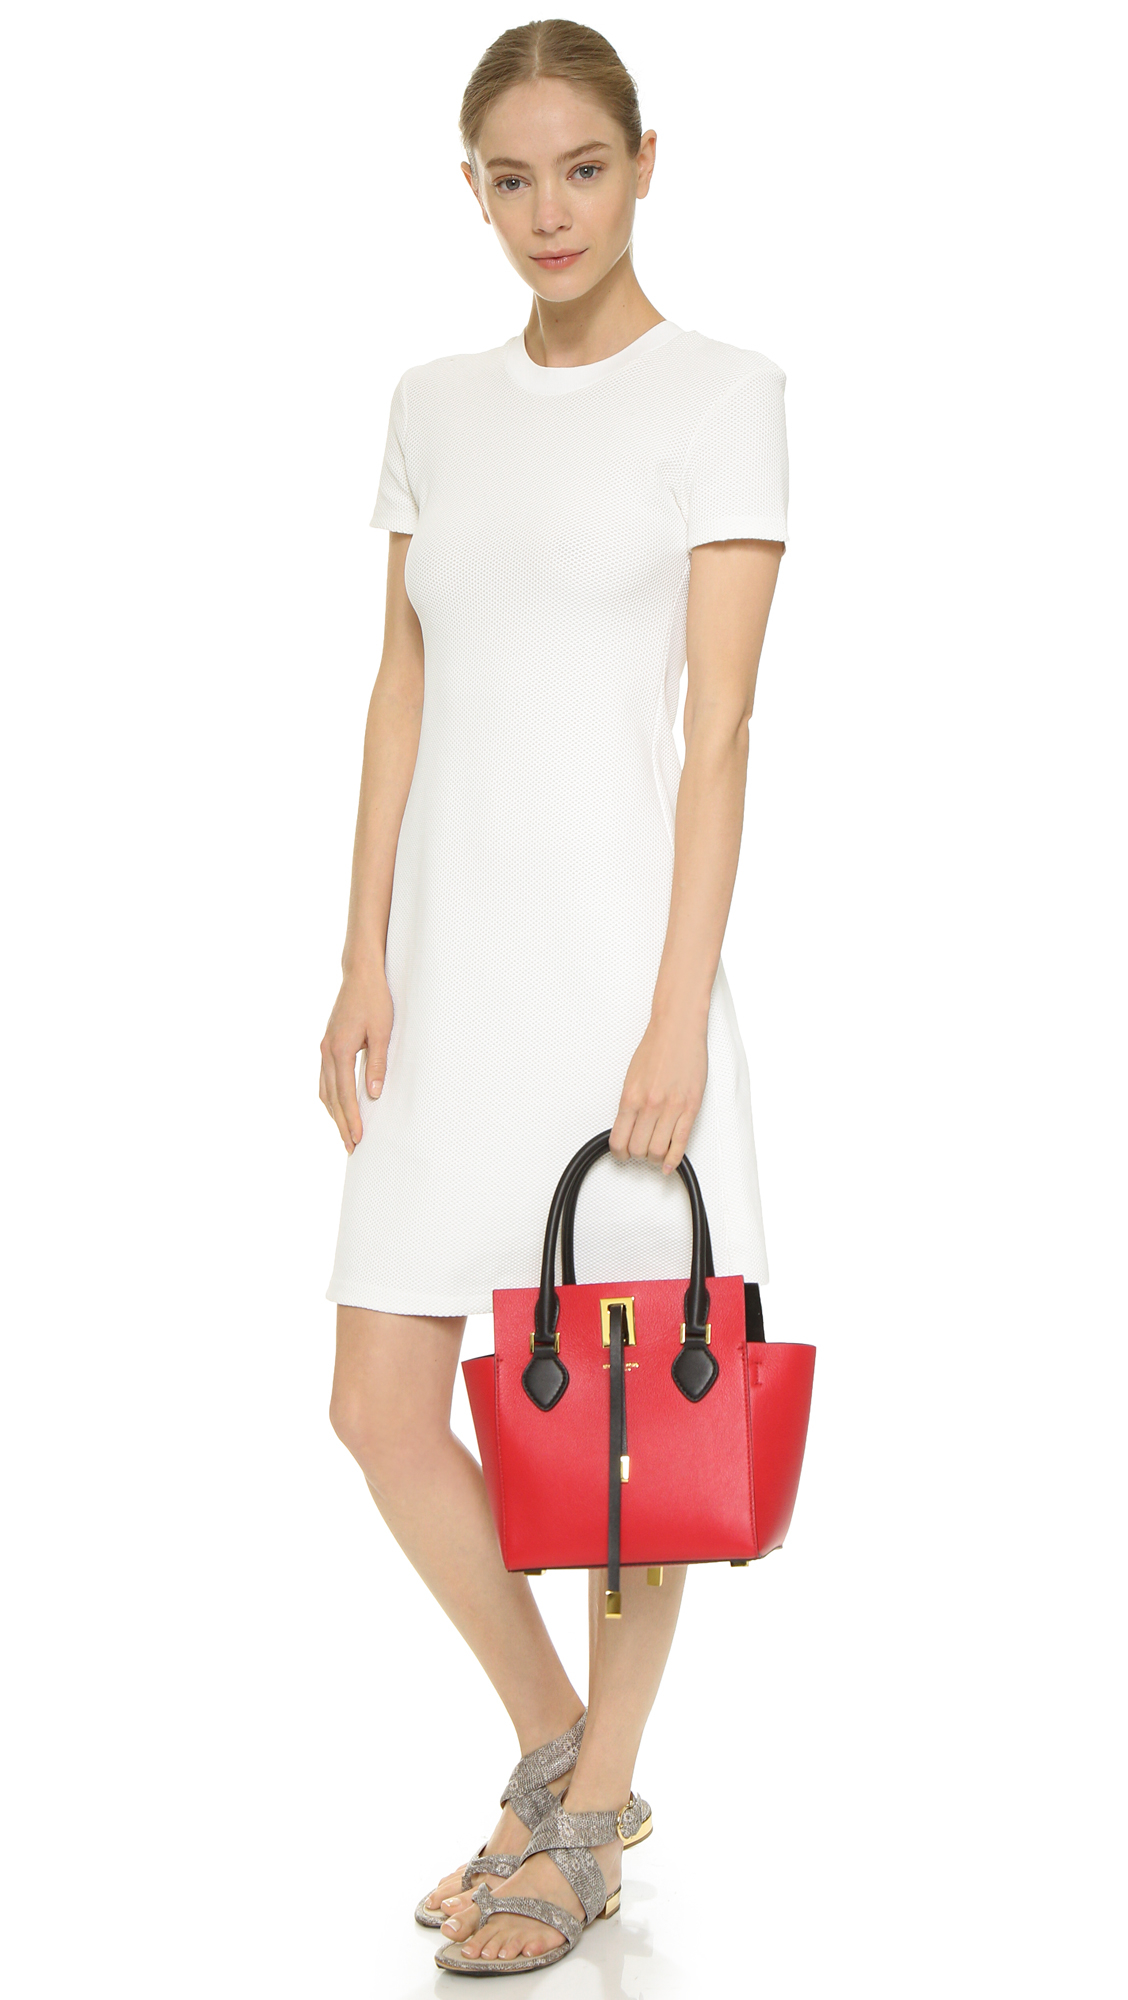 Lyst - Michael Kors Miranda Xs Tote - Crimson Black in Red da04e5302c